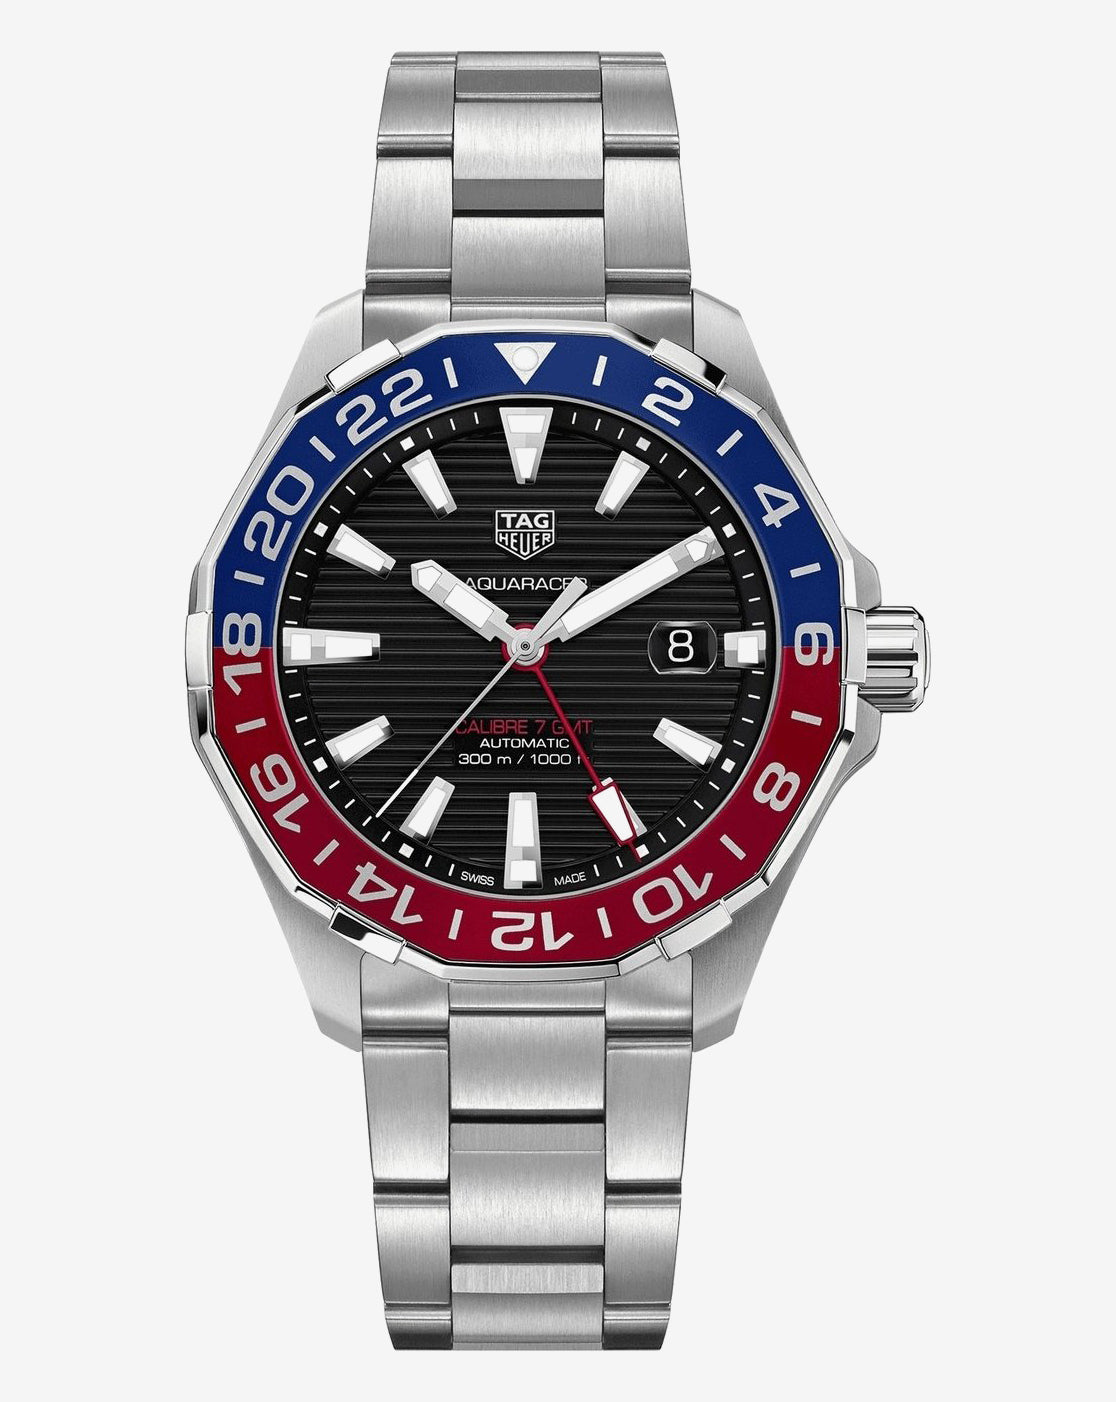 TAG Heuer Aquaracer Pepsi Gmt Calibre02 45mm Ref#WAY201F.BA0927